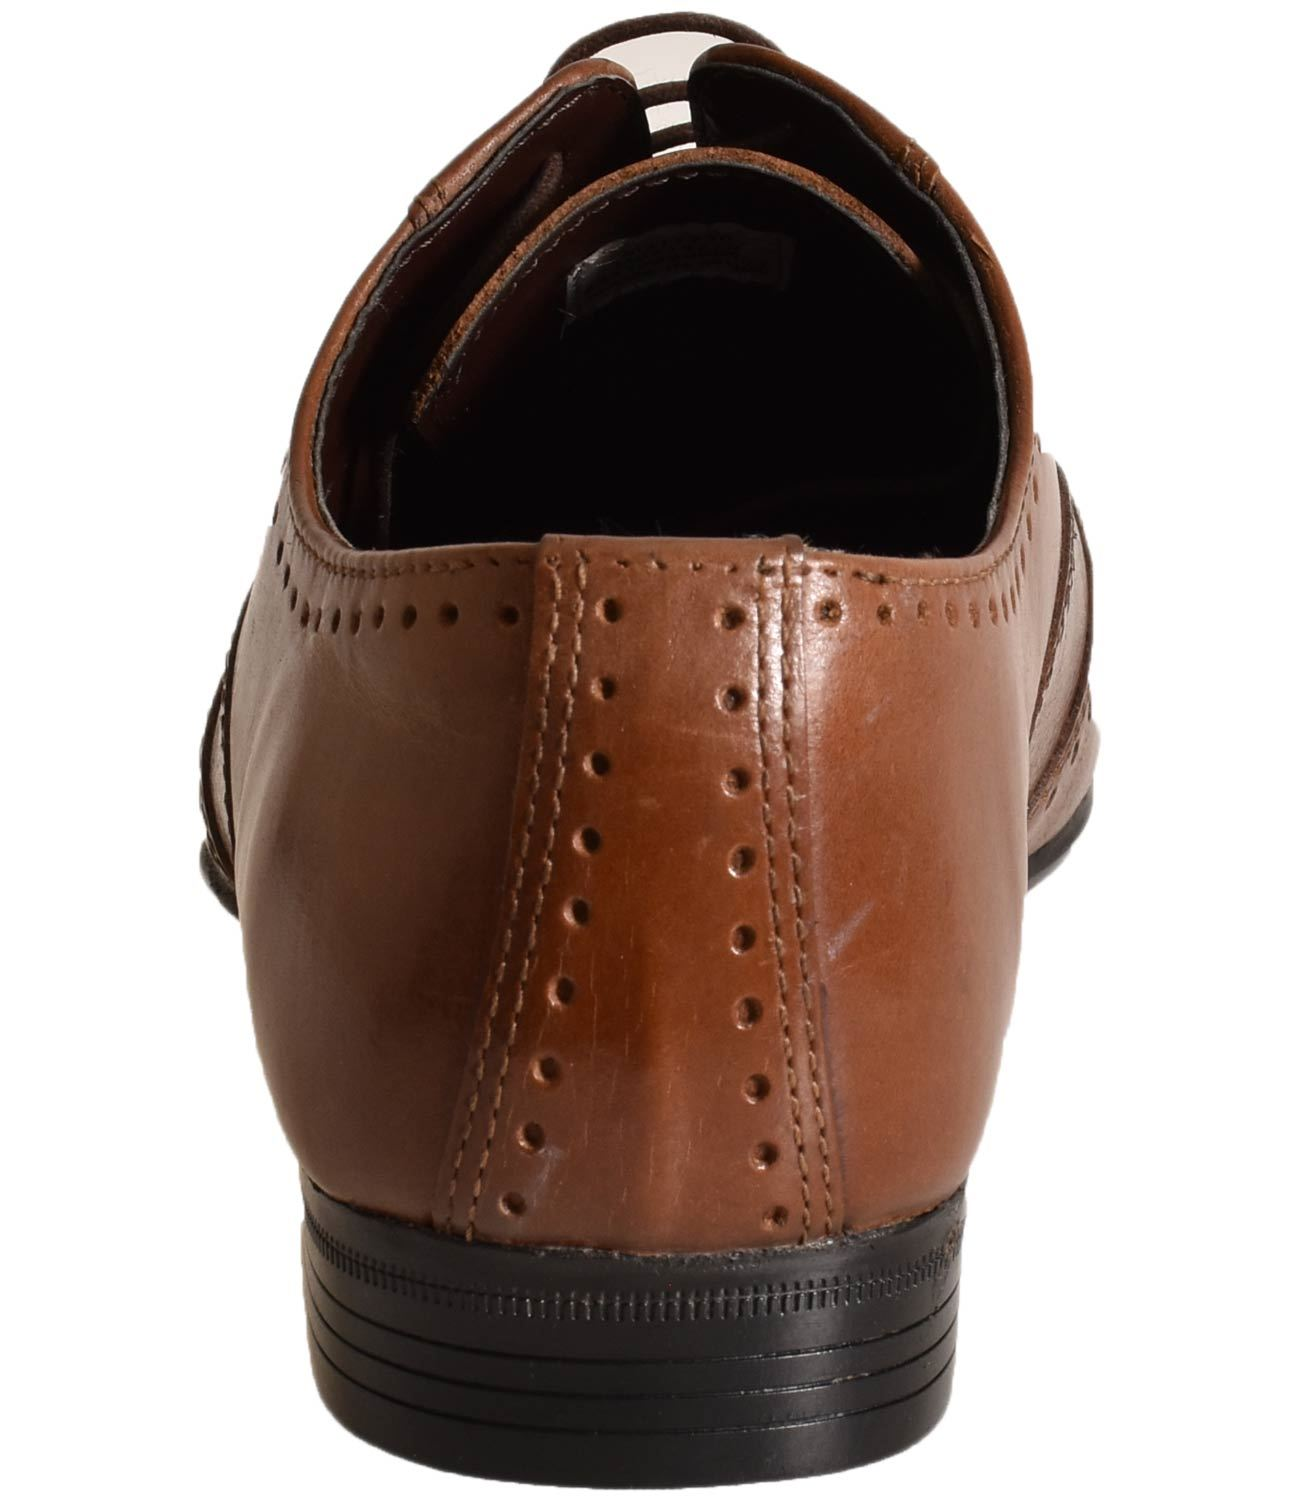 Mens-UK-Style-Leather-Lining-Formal-Office-Wedding-Smart-Work-Brogue-Shoes thumbnail 37